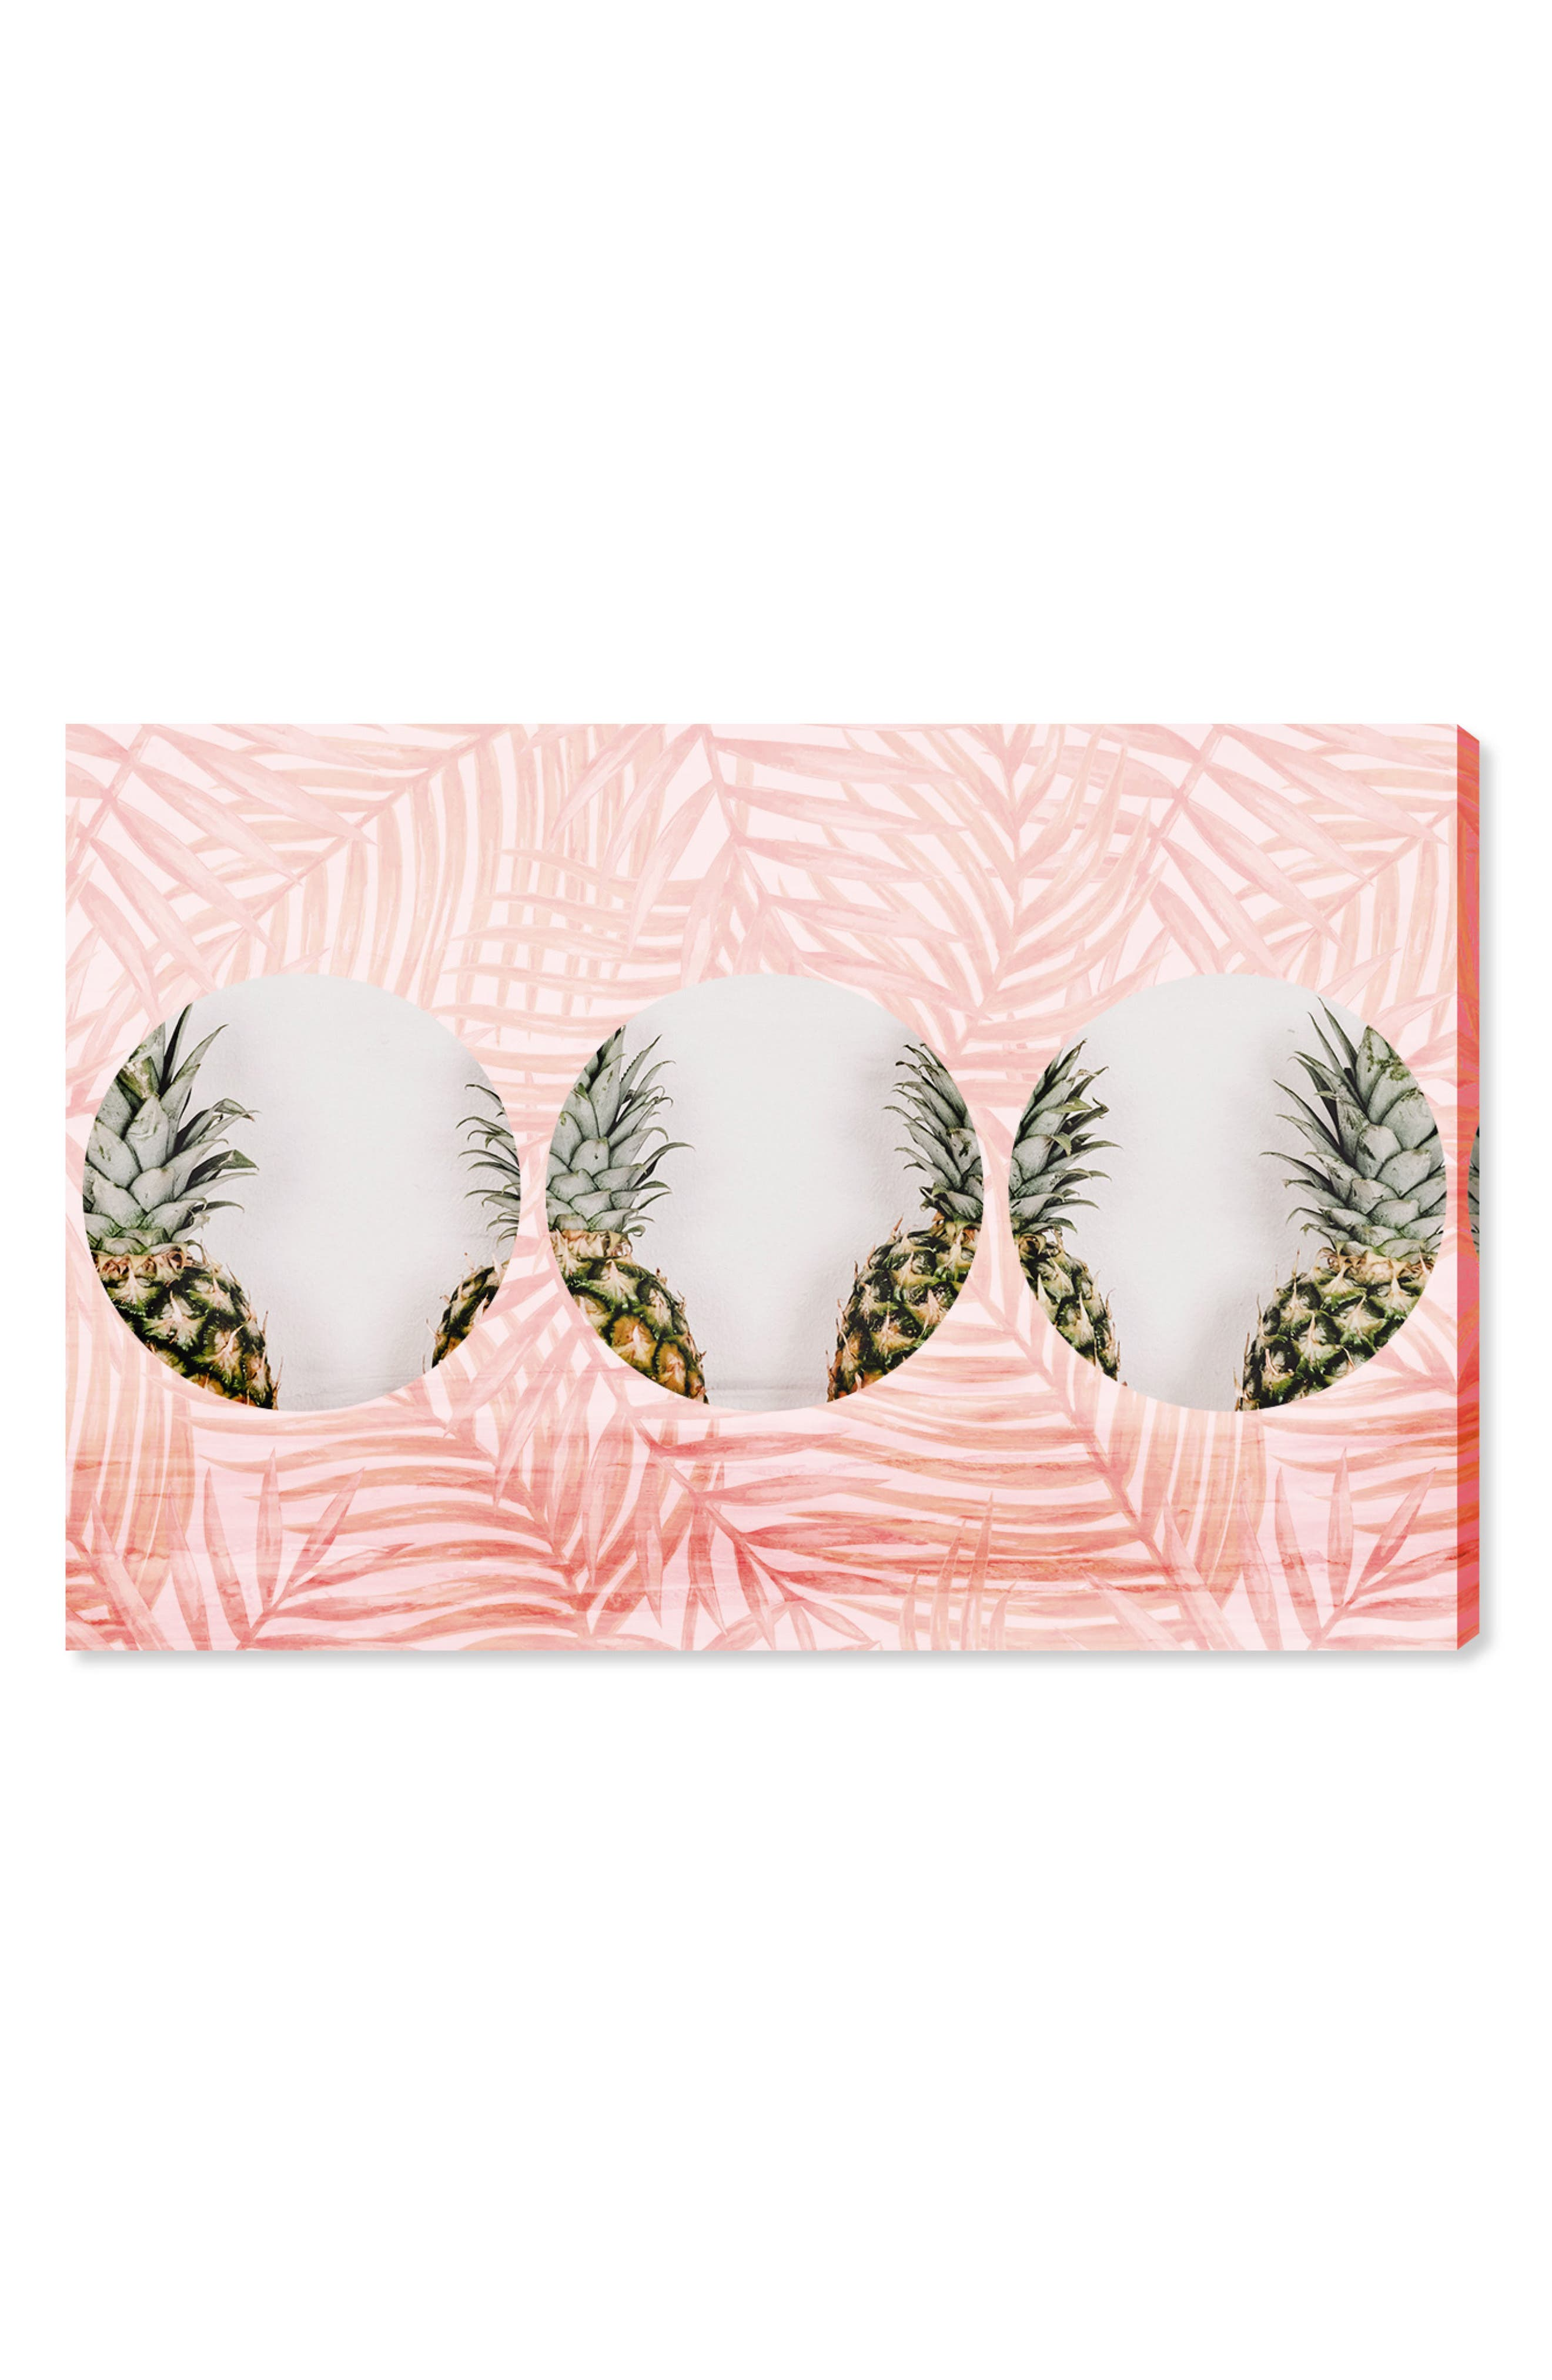 Pineapples & Leaves Canvas Wall Art,                             Main thumbnail 1, color,                             Pink